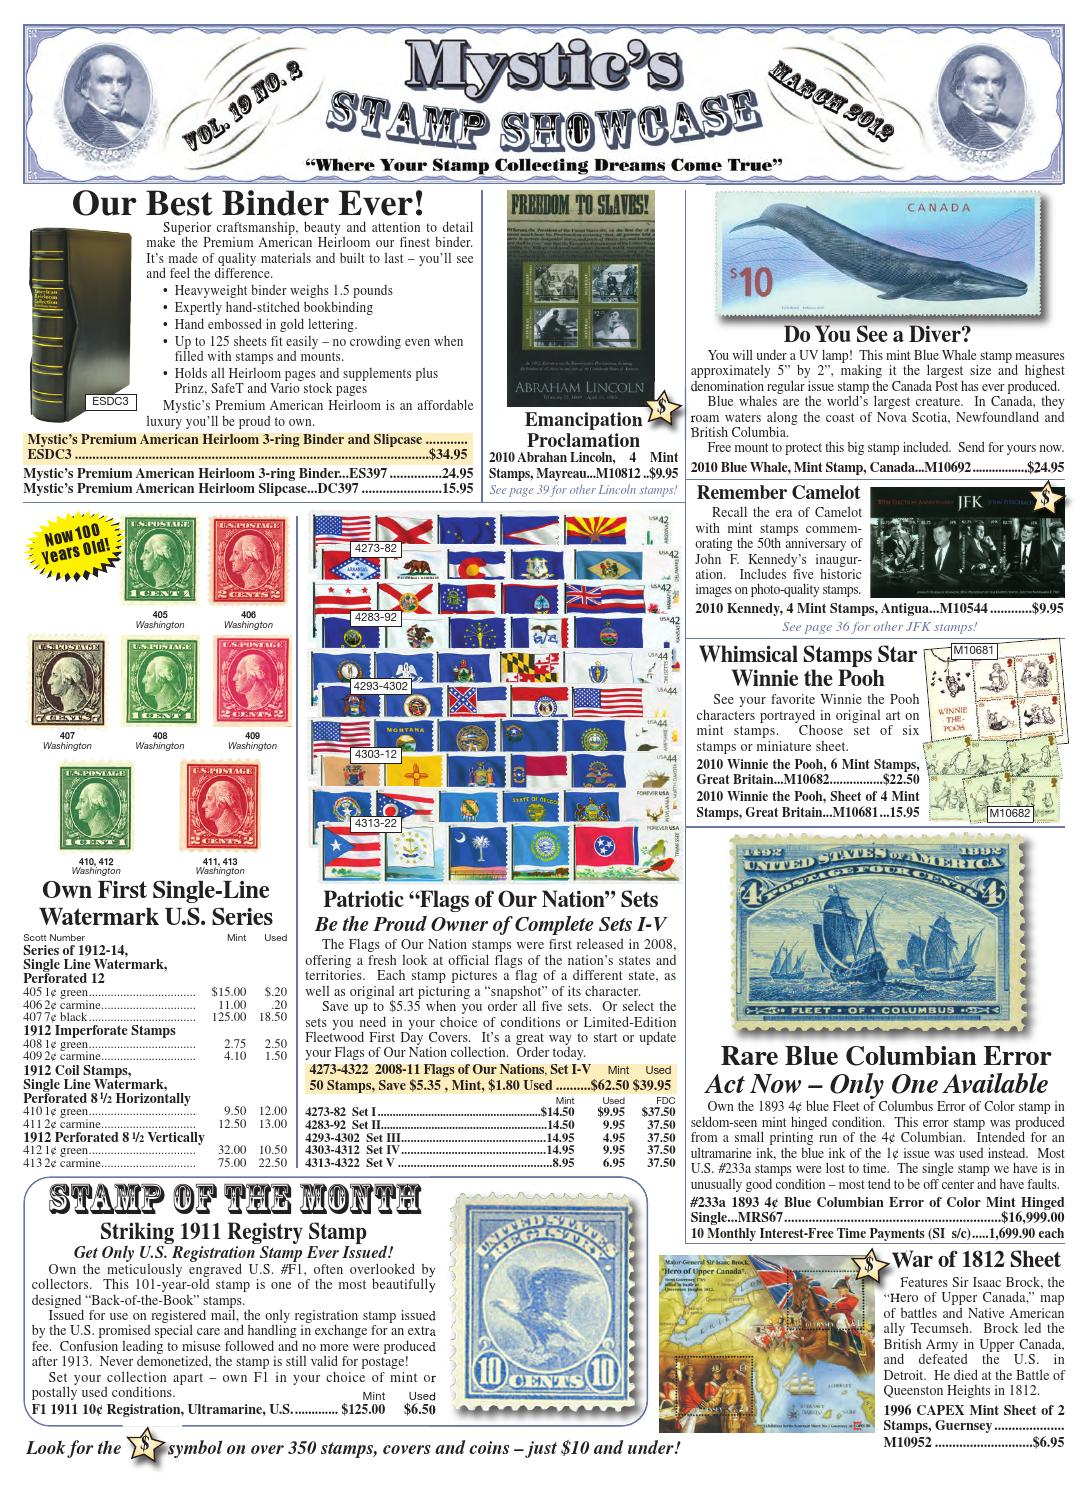 2012 March Showcasemystic Stamp Company – Issuu Inside North Penn School District Calendar 2021 20